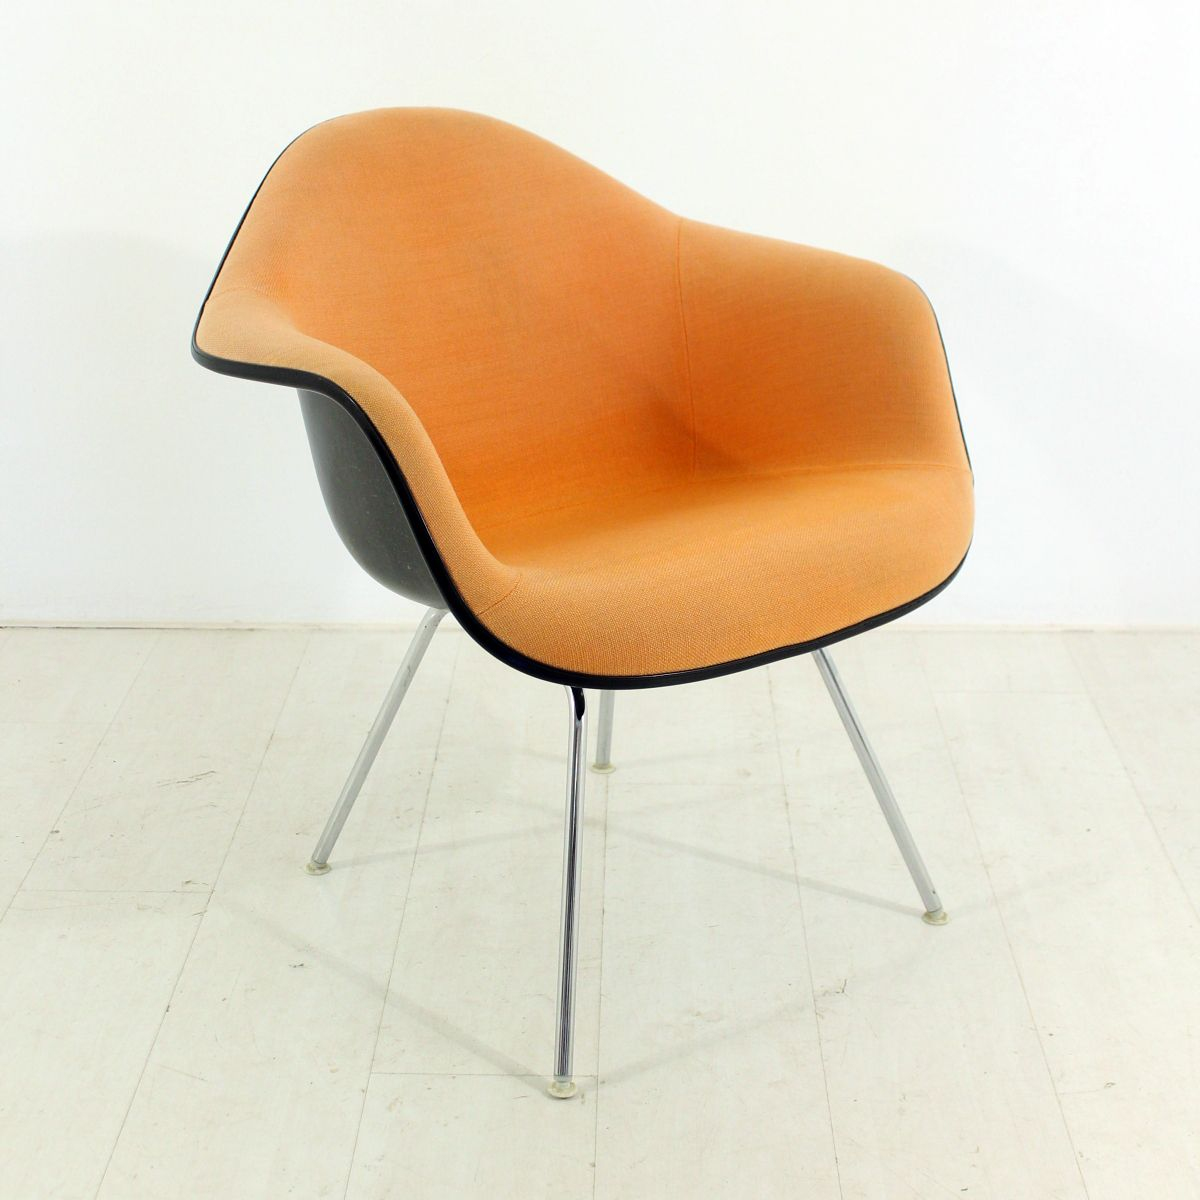 Fauteuil lounge vintage en terracotta par charles ray for Fauteuil charles ray eames